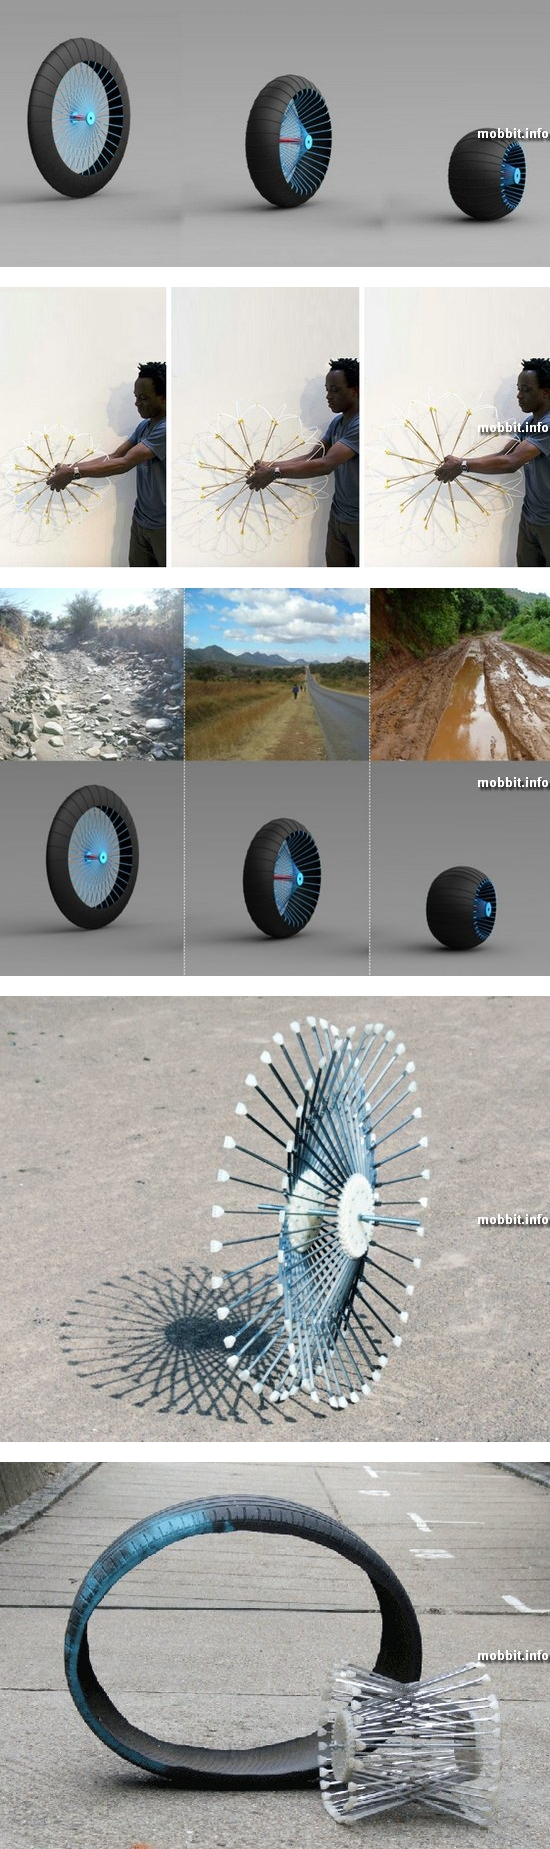 Roadless Wheel